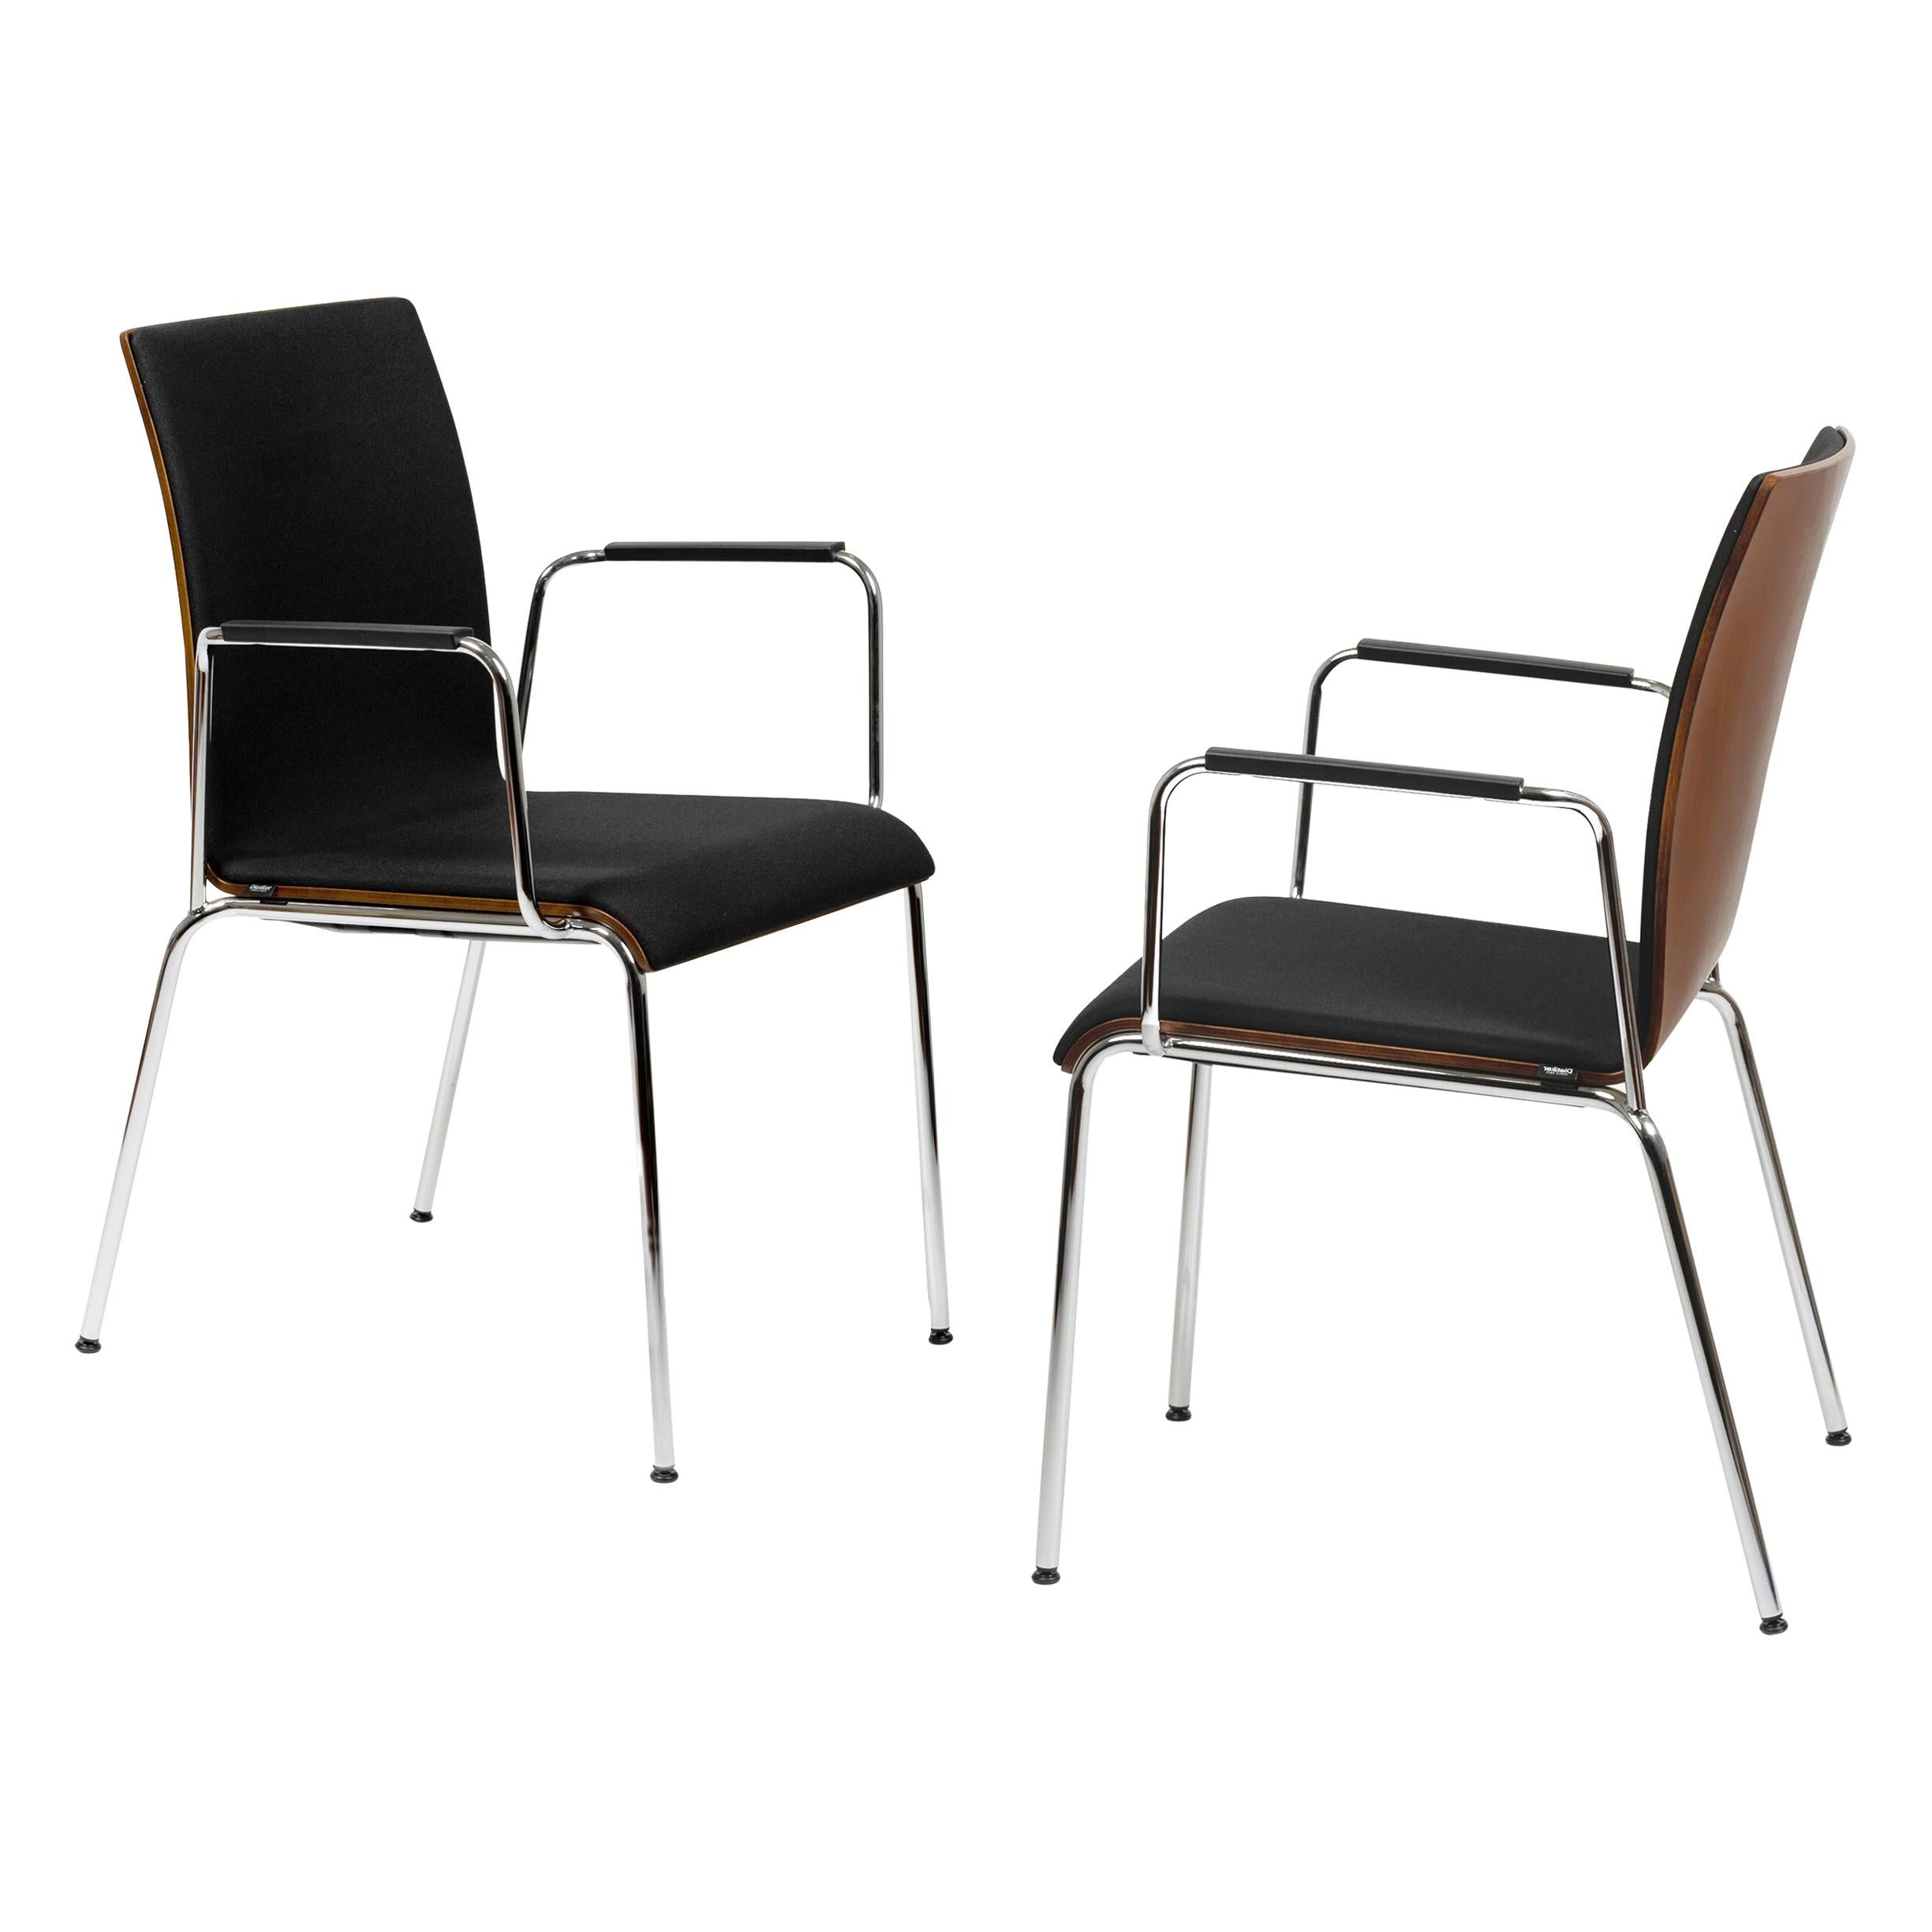 Set of 2 Dietiker Poro L Swiss Chairs, Brown with Black Upholstery, in Stock